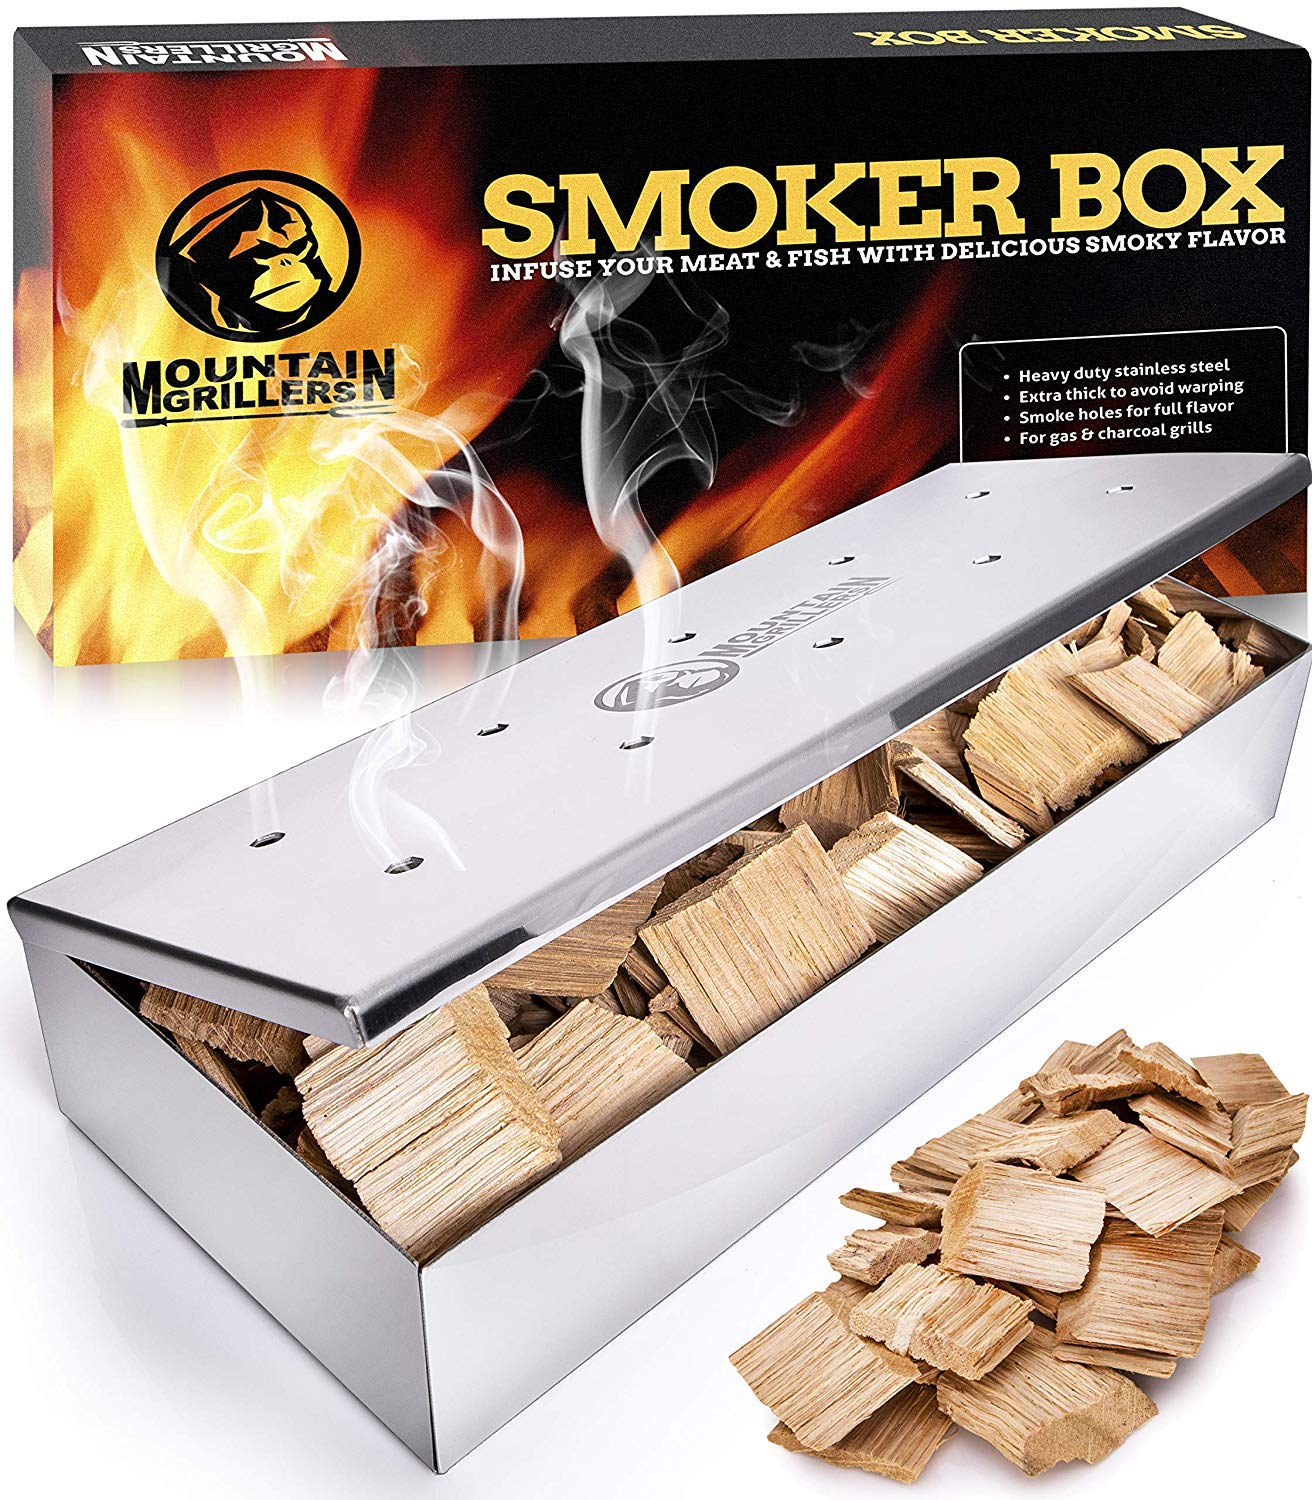 Smoker Box for Wood Chips - Use a Gas or Charcoal BBQ Grill and Still Get That Delicious Smoky Barbecue Flavored Grilled Meat - Hinged Lid for Easy Access (Polished Finish Stainless Steel) by Mountain Grillers